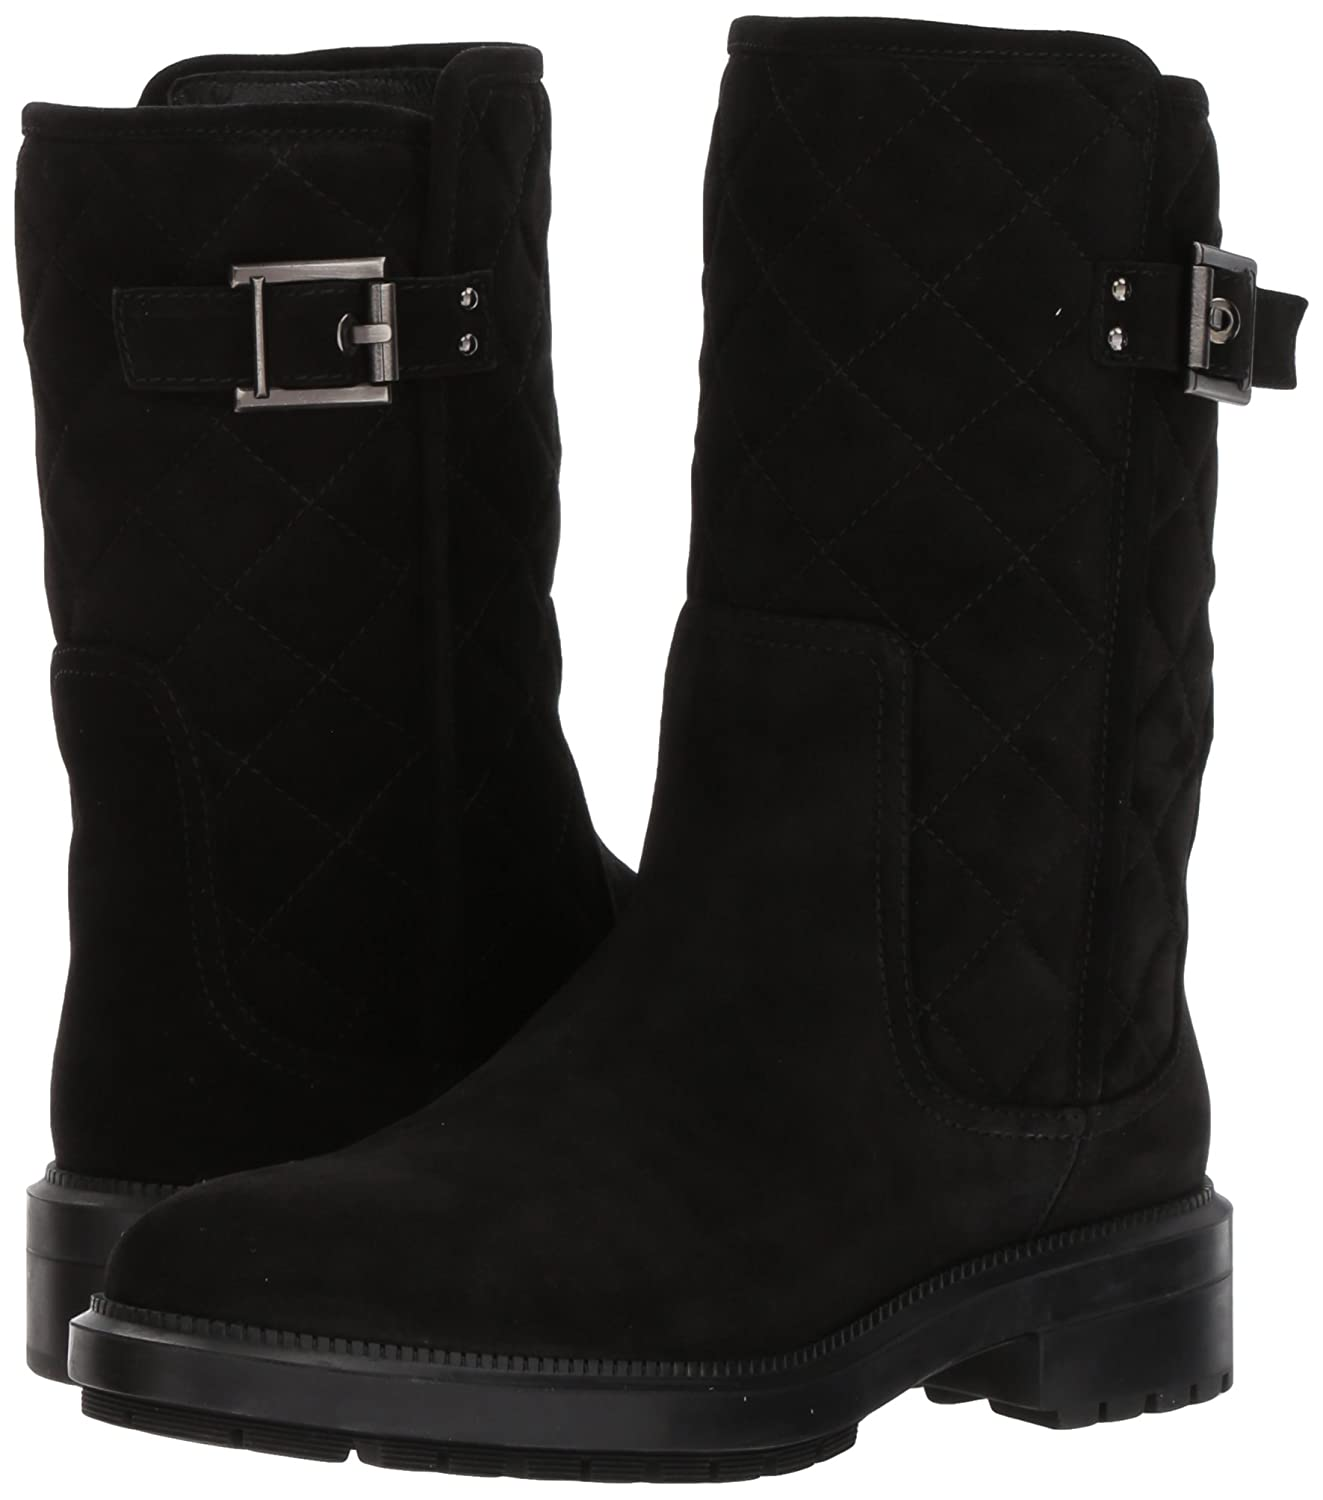 Aquatalia Women's Layla Suede Motorcycle Boot B06XNWVW8D 10.5 B(M) US|Black